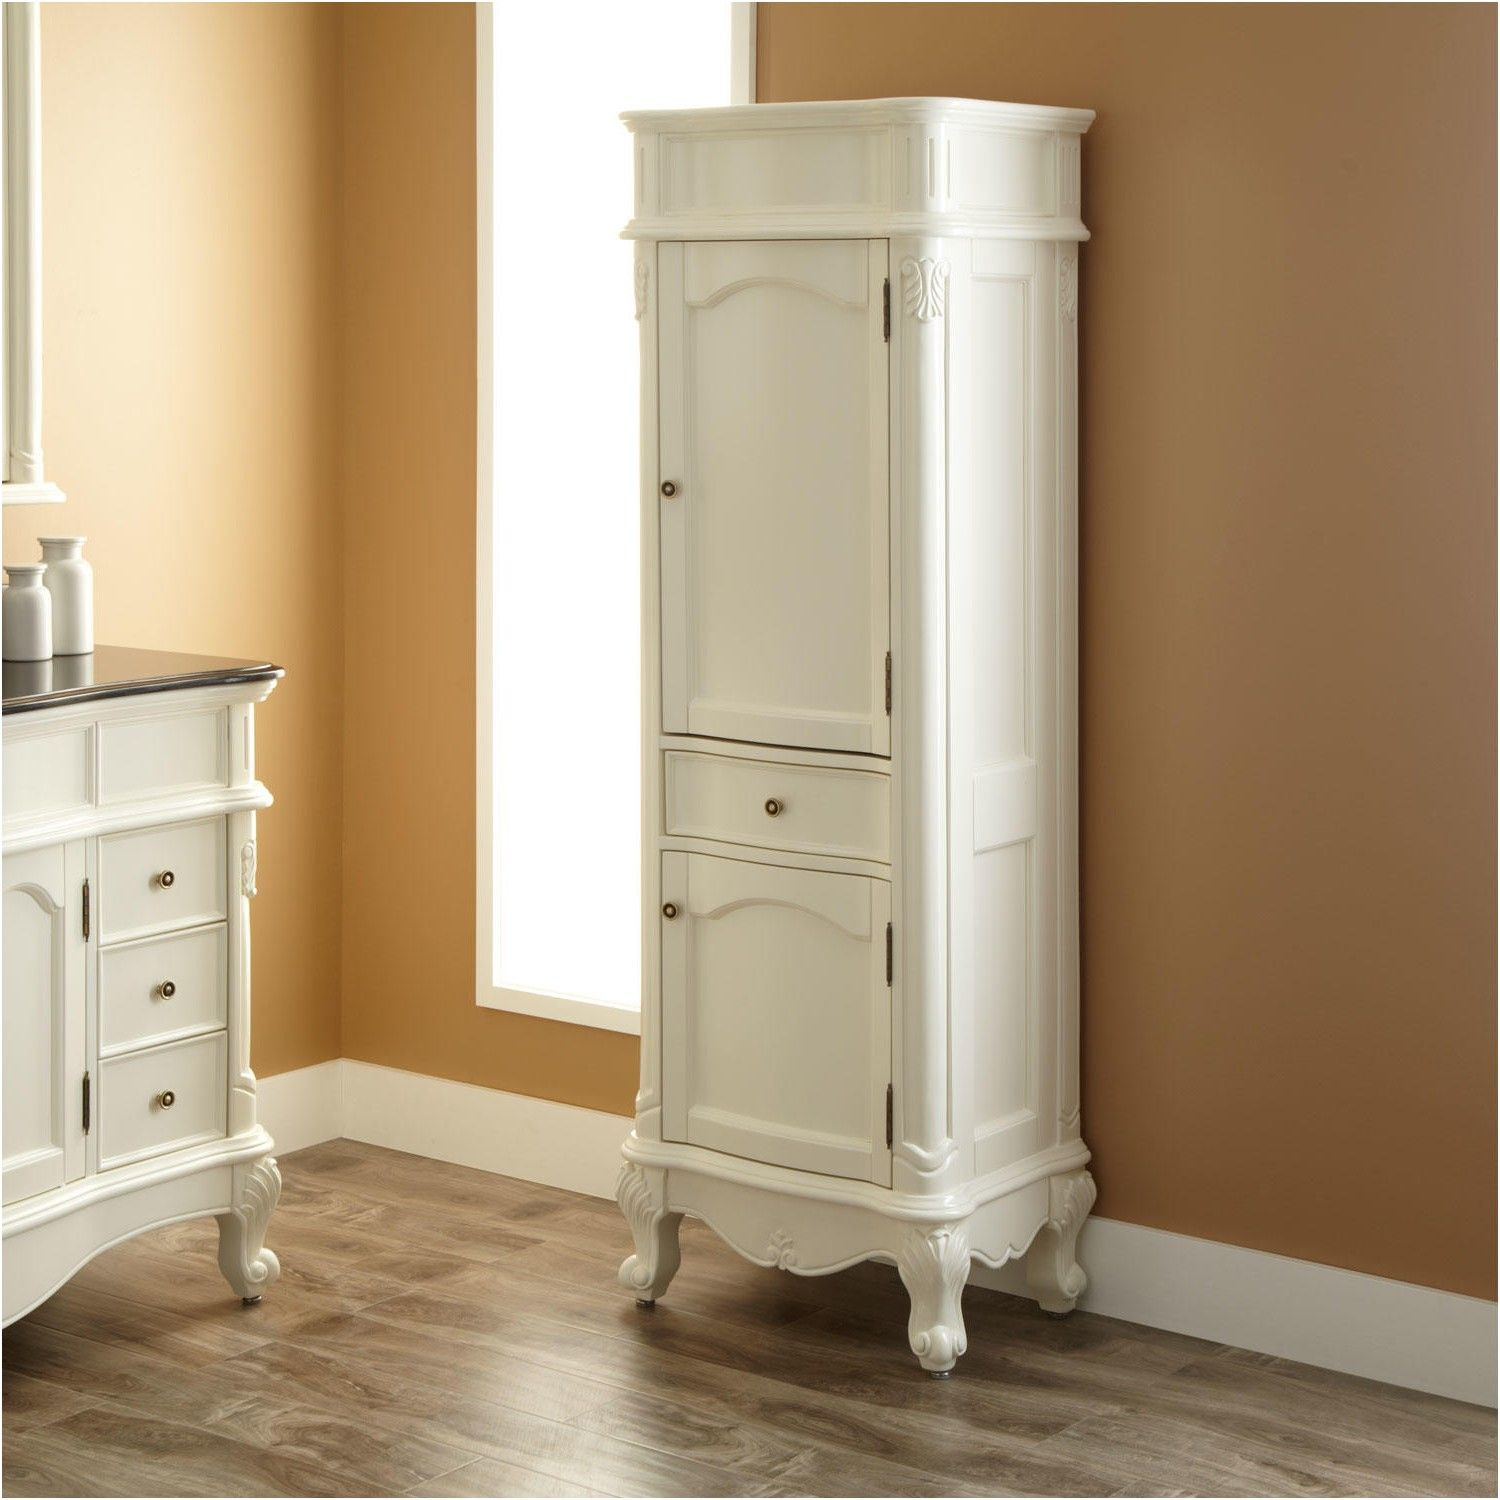 Target Medicine Cabinet Beauteous Interesting Bathroom Cabinets Tar Storage E On Inspiration From Design Ideas